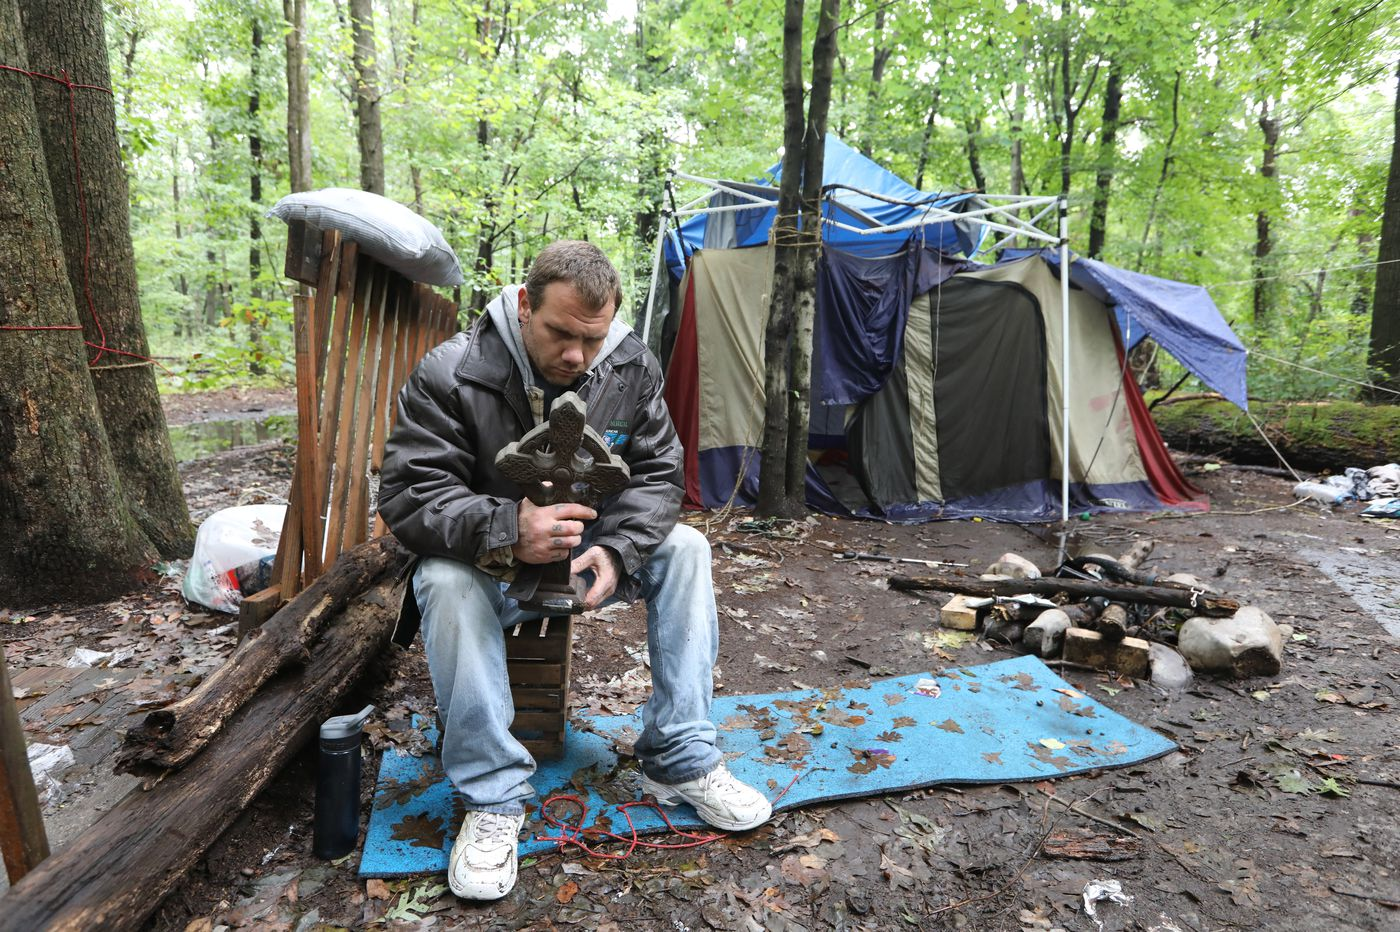 As Bucks County fights homelessness, some entrenched camps hide in plain sight